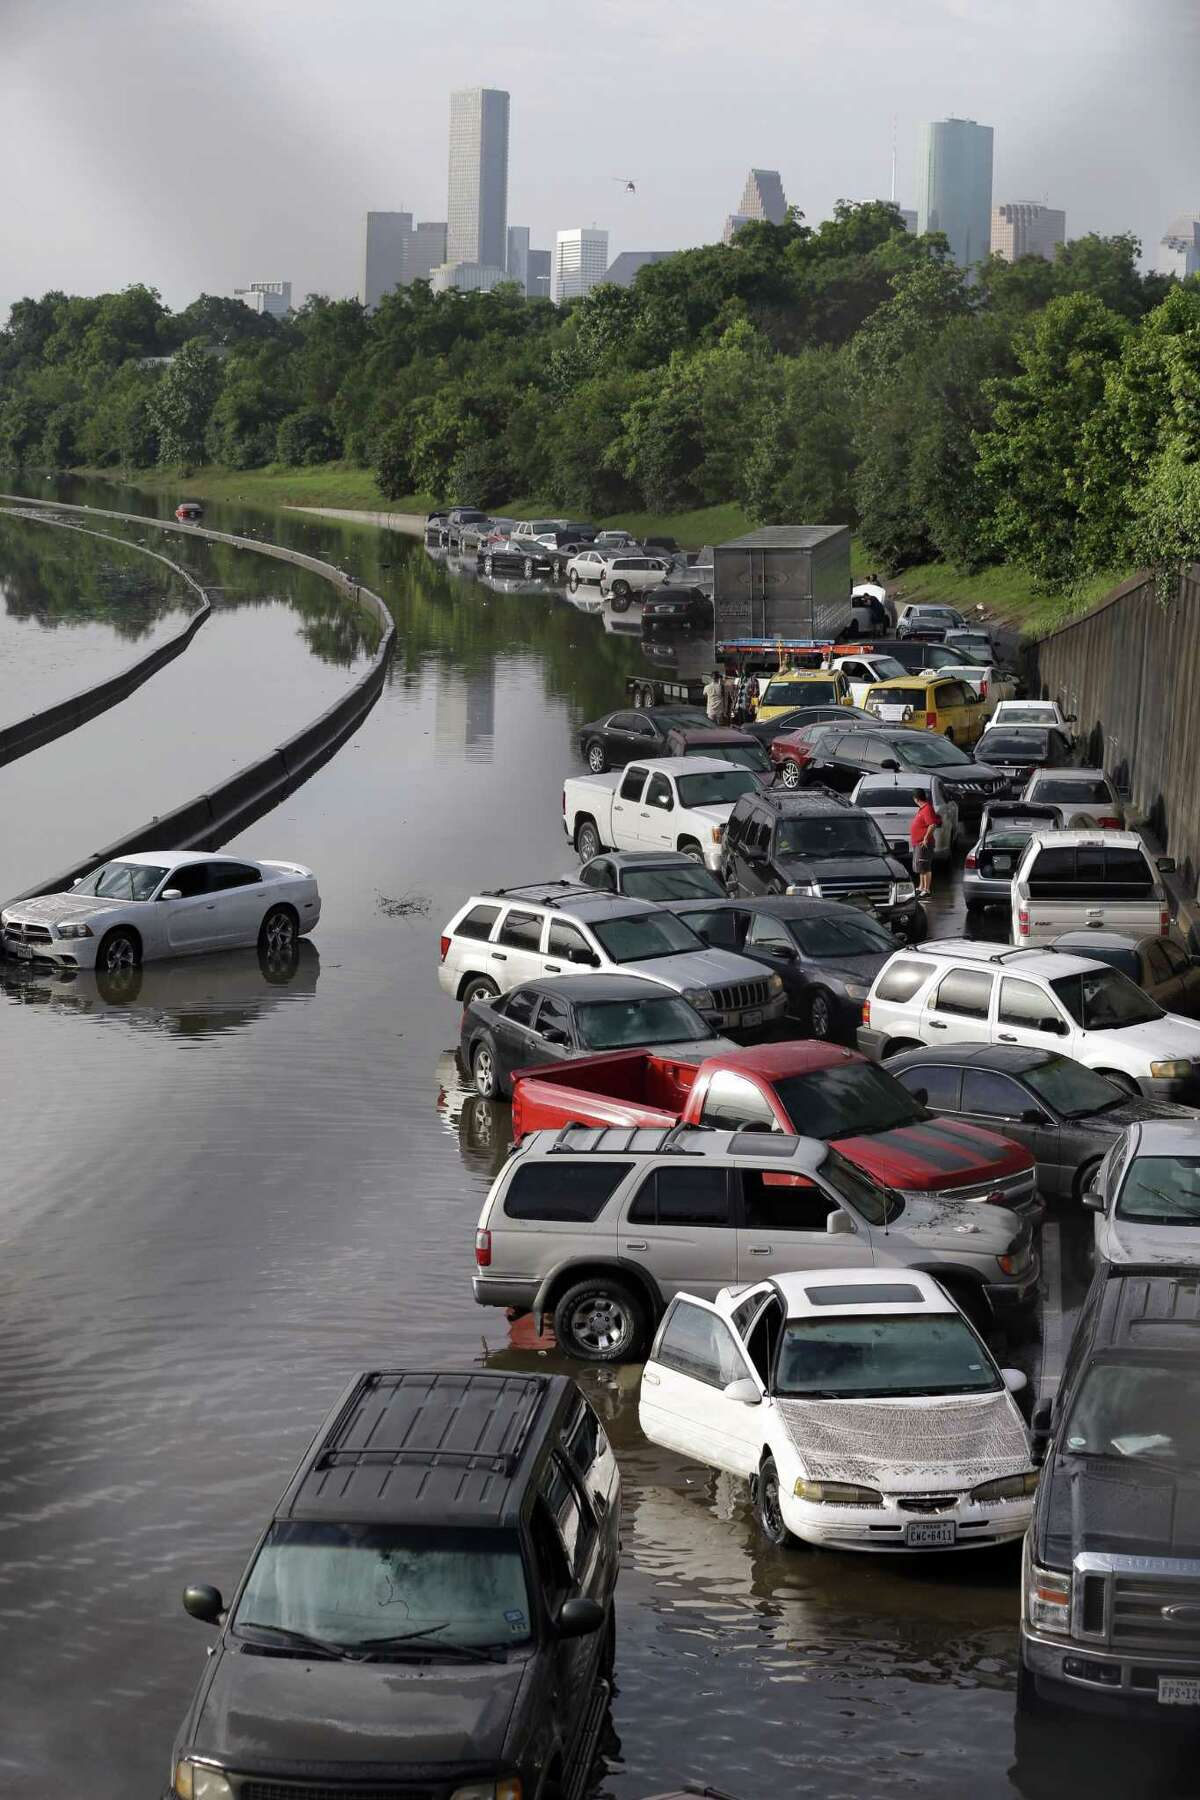 Cars remain stranded along a flooded section of Interstate 45 after heavy rains overnight in Houston Tuesday. Several major highways are closed in the Houston area due to high water.